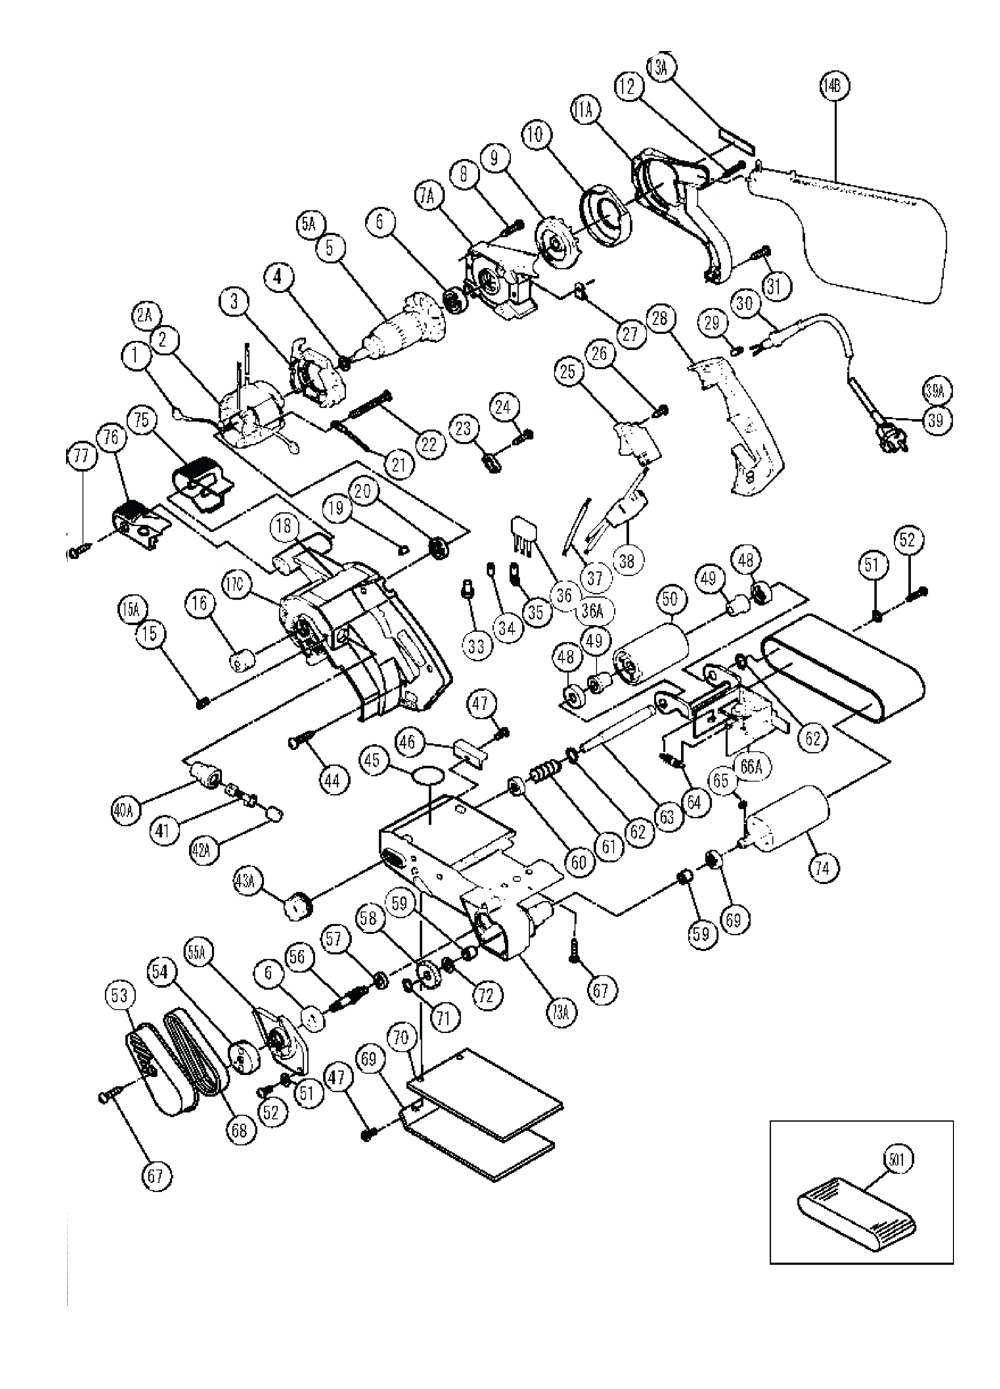 Hitachi Sb10v Parts List Repair Oem Chicago 7 Polisher Wire Diagram Schematic